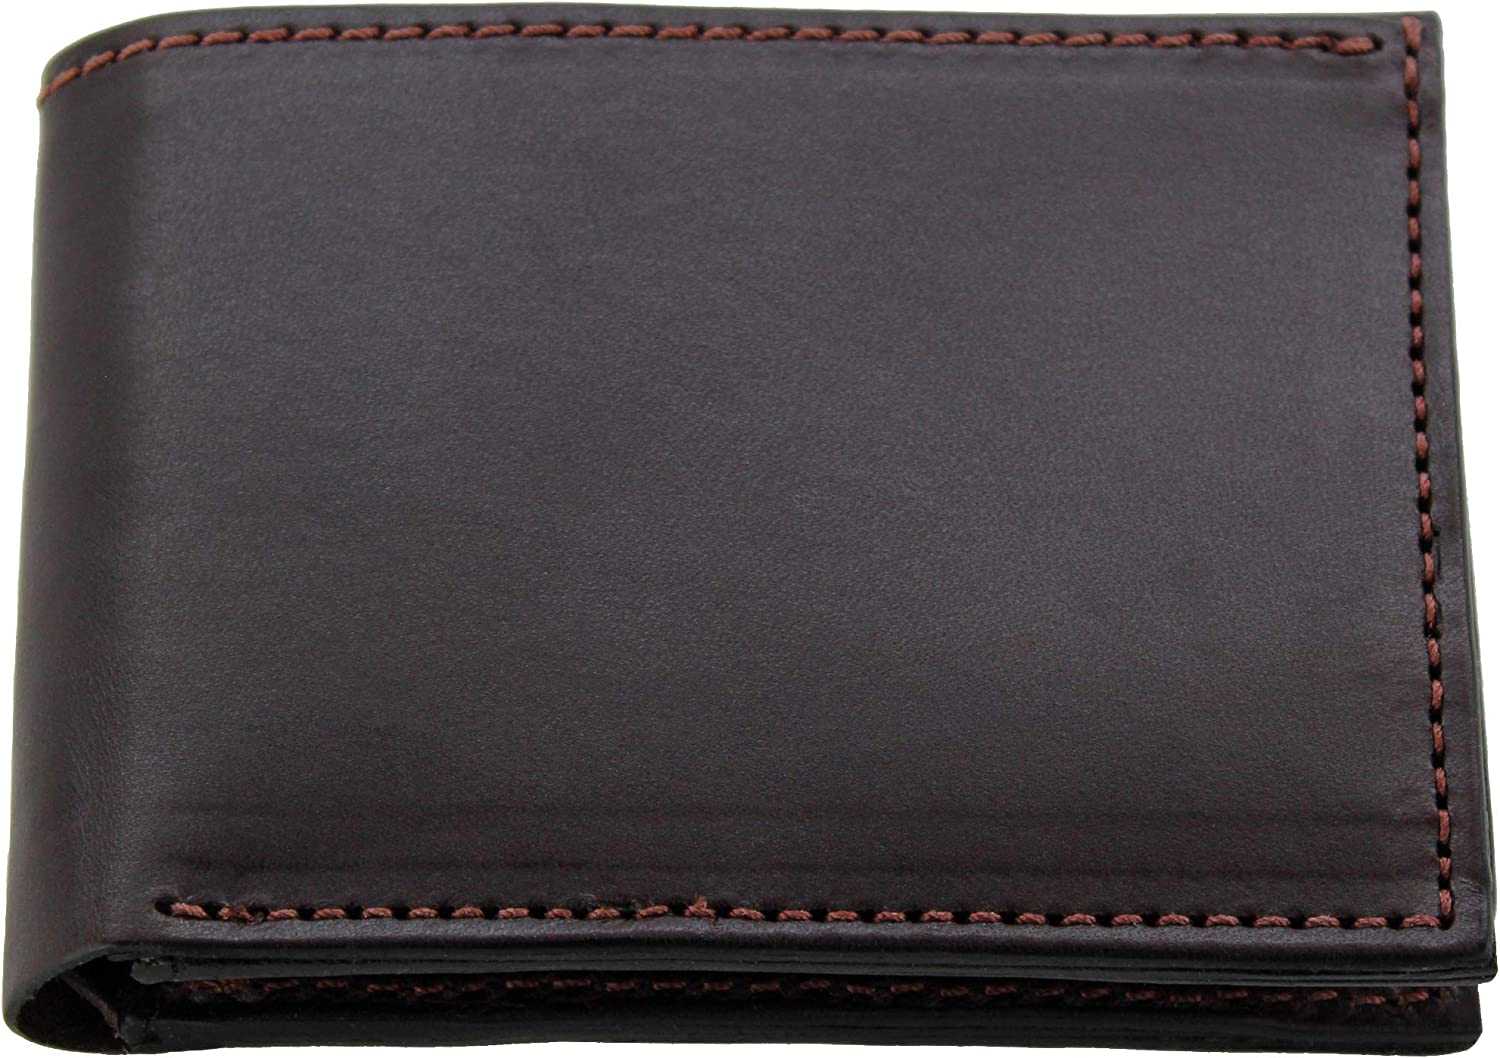 Premium Full Grain Bridle Leather Men's Bifold Wallet With Flip Up ID Window – Brown - Made in USA